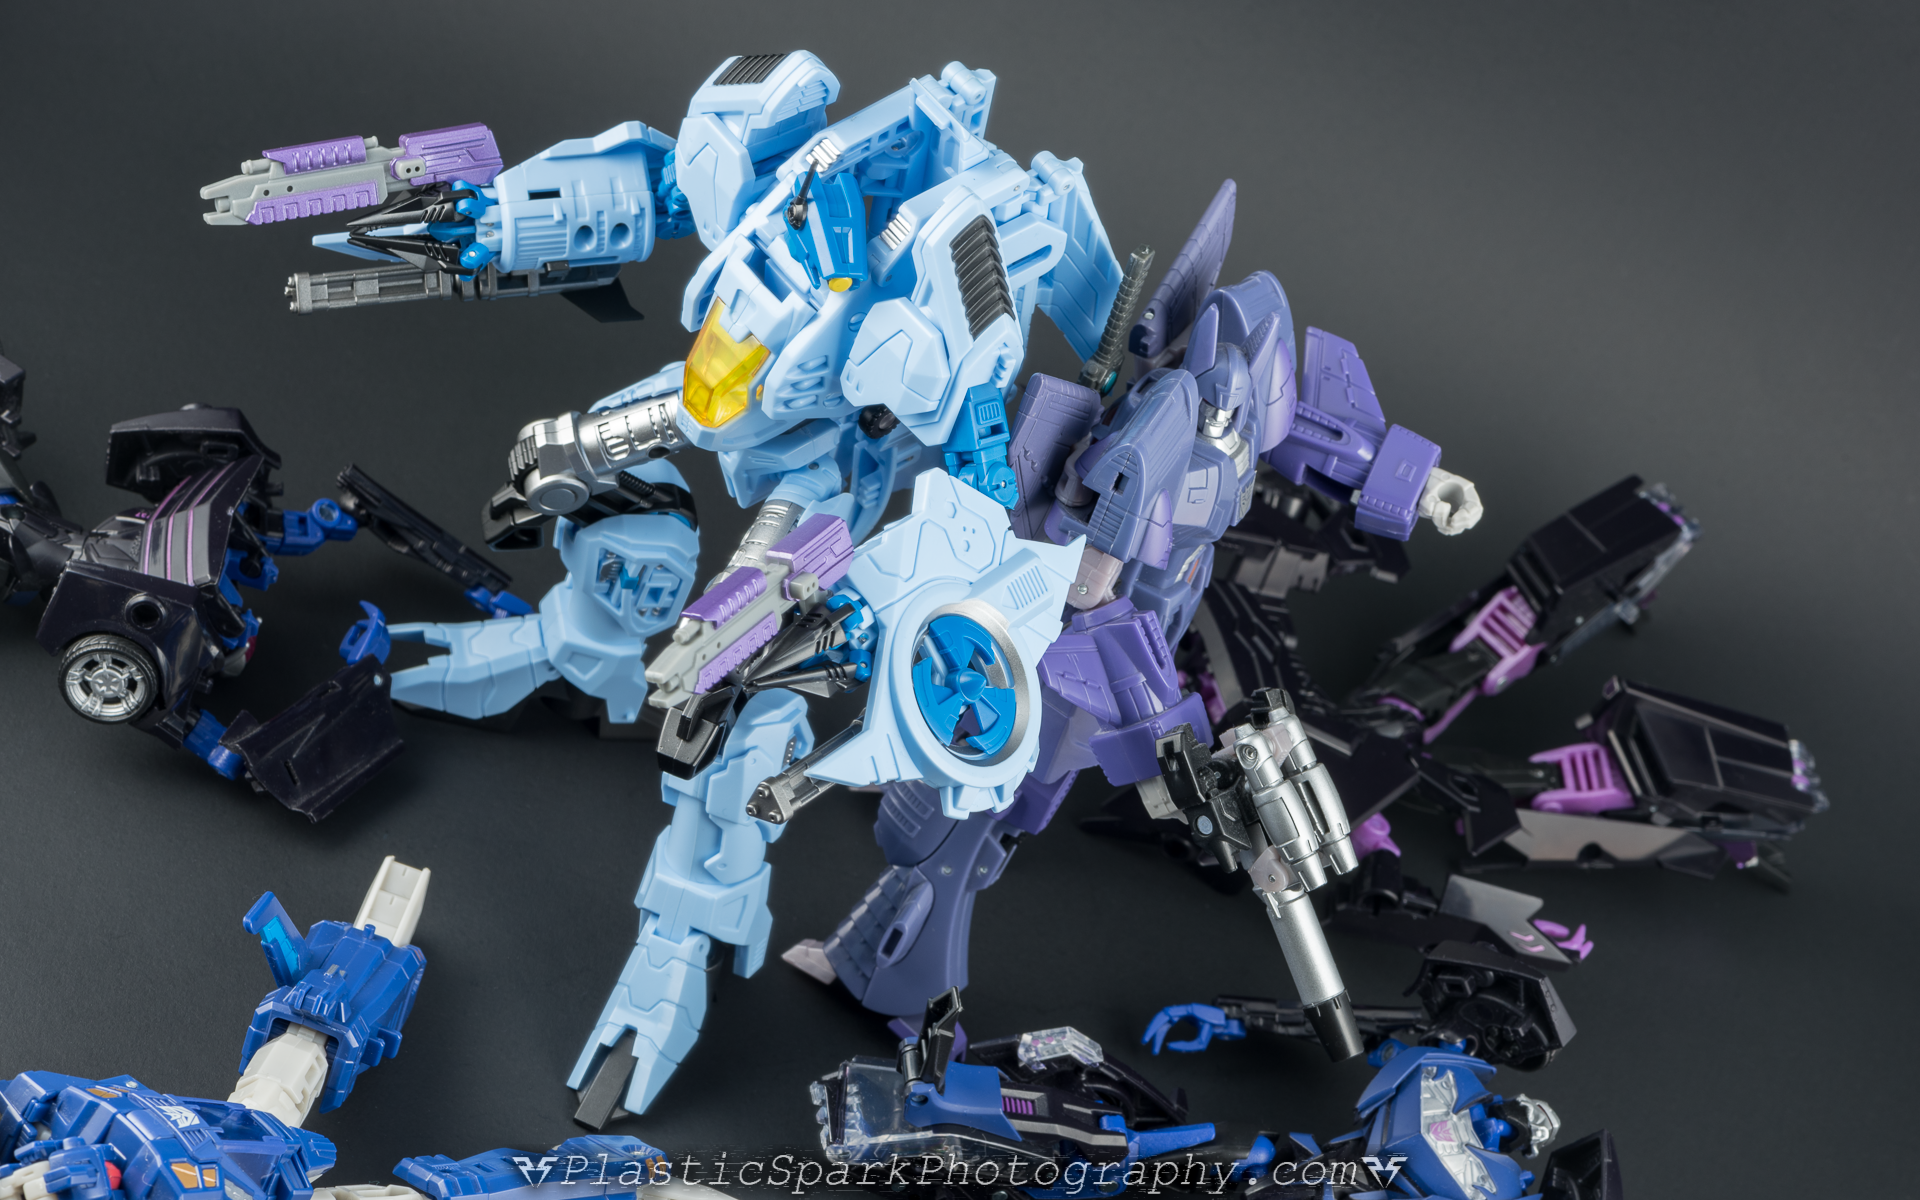 Mastermind-Creations-R-24-Turben-(10-of-34).png